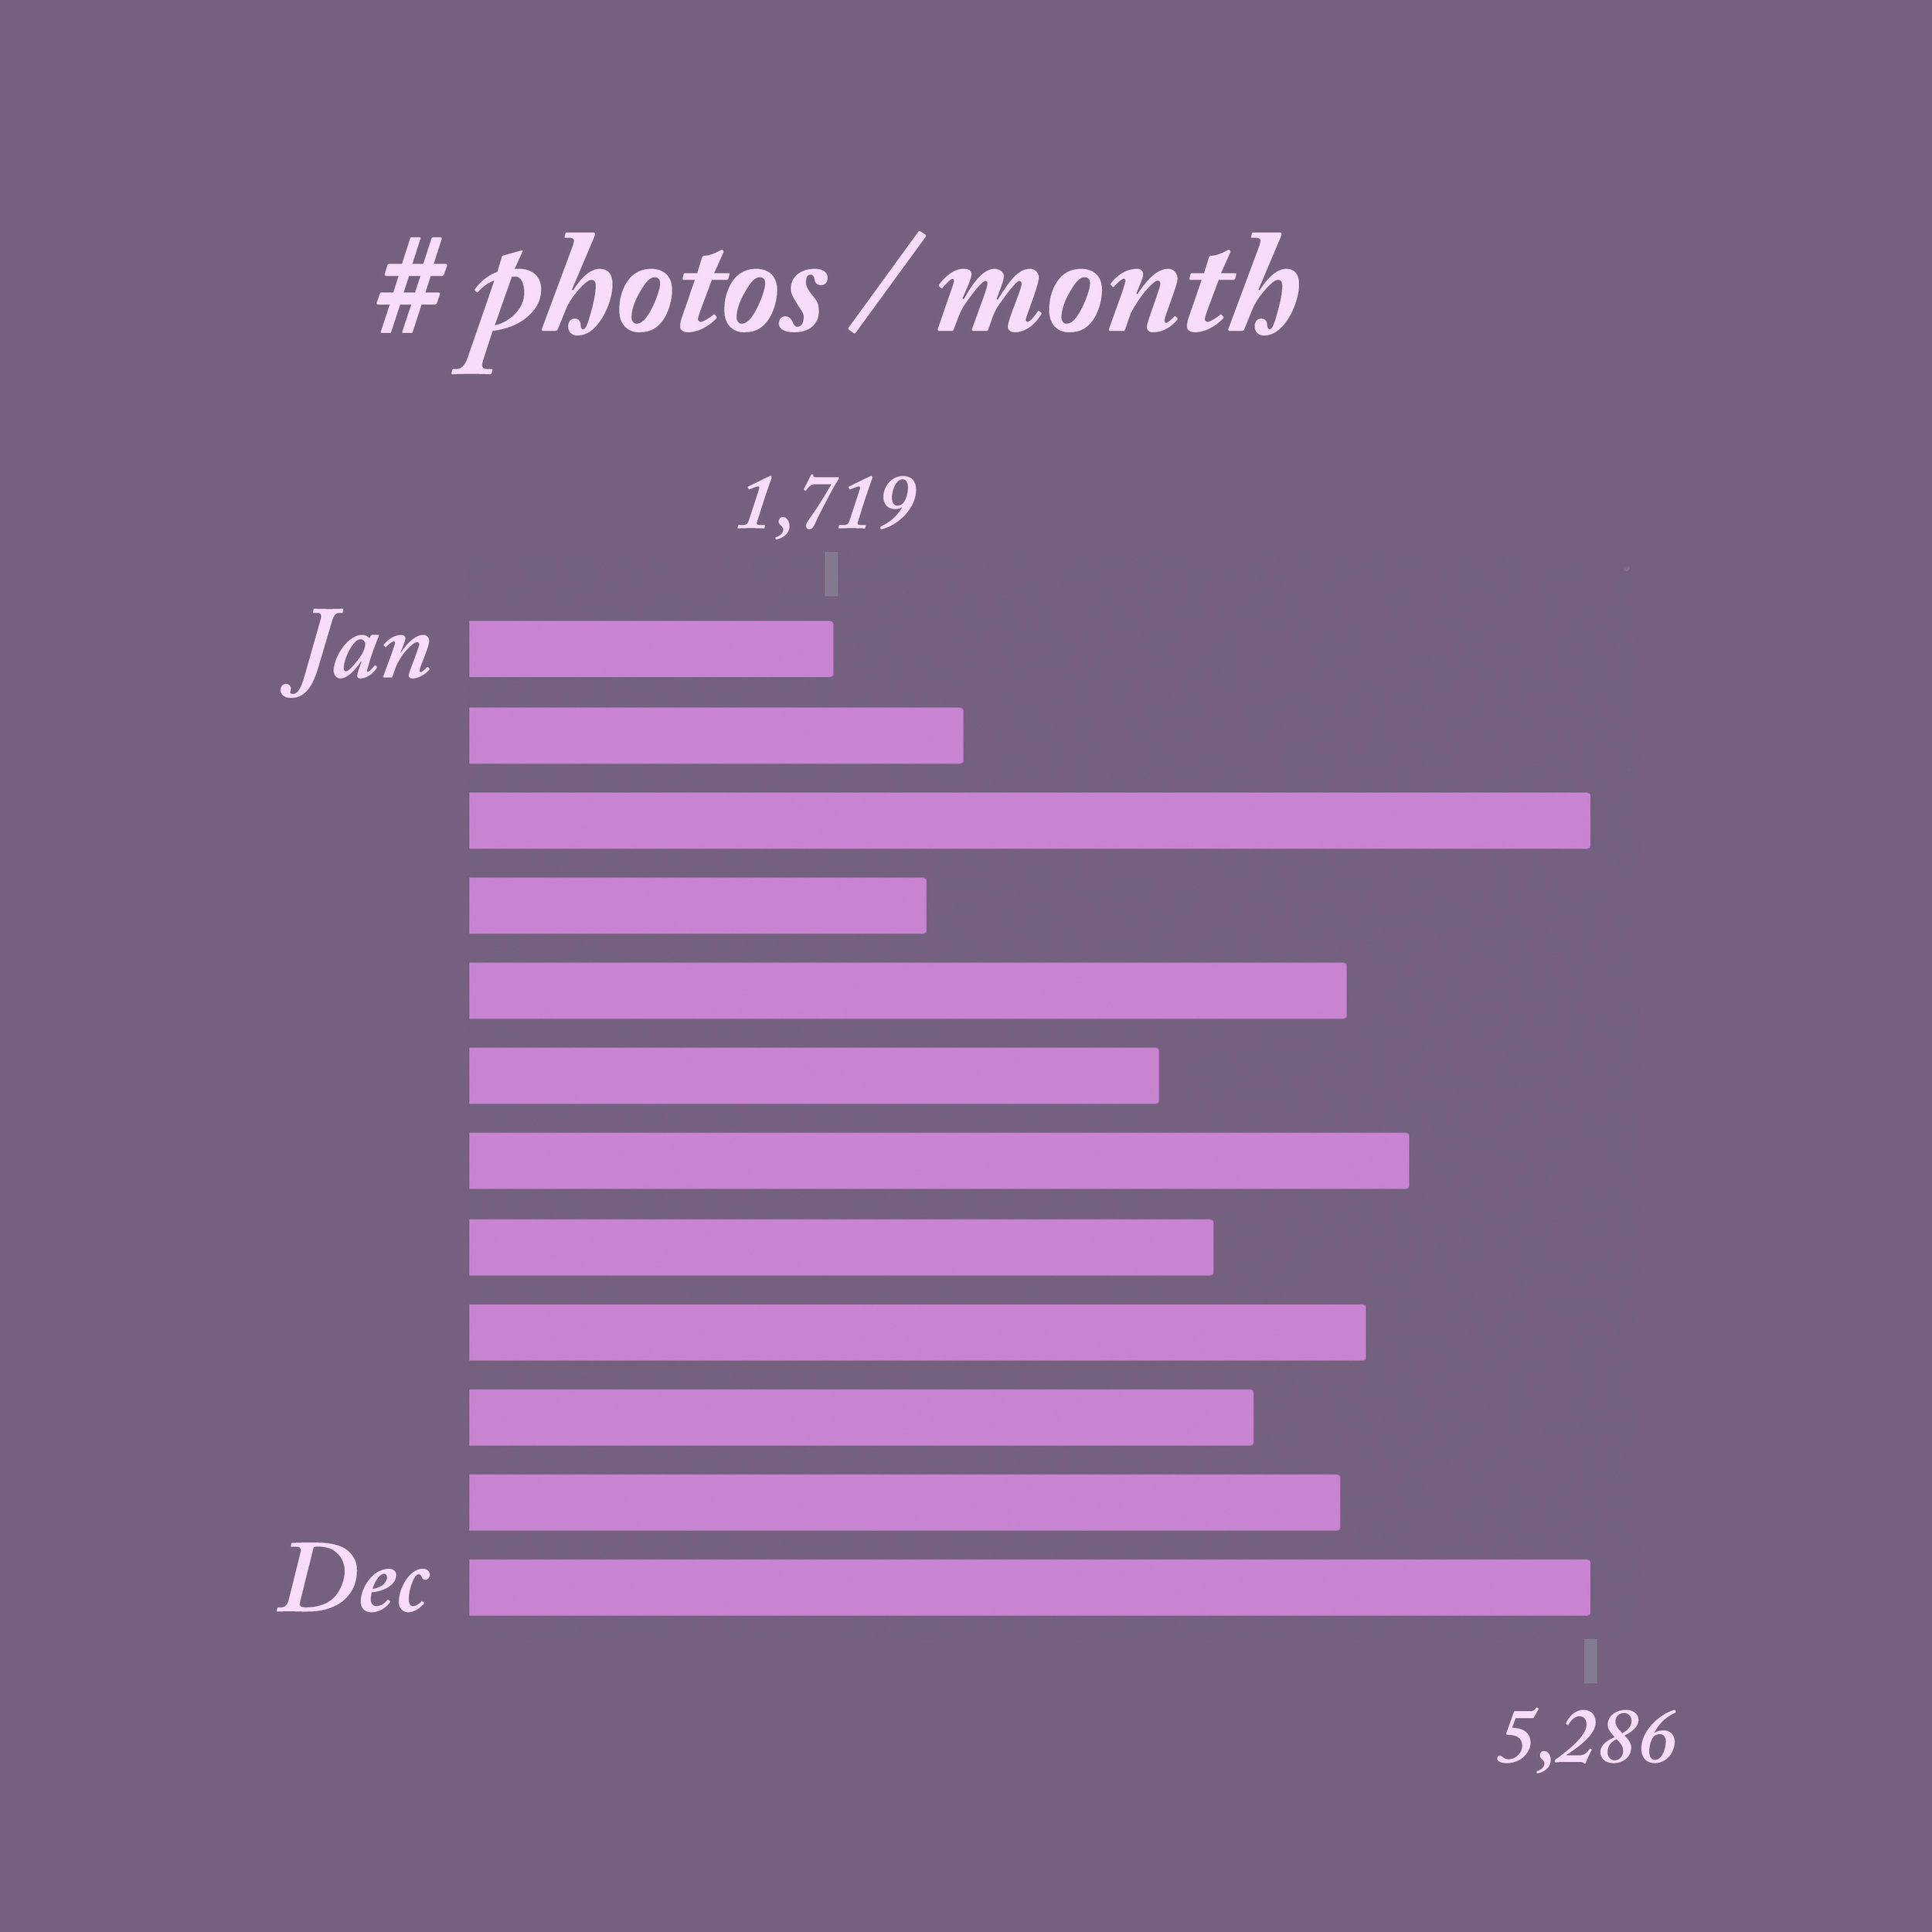 number-of-photos-taken-across-months